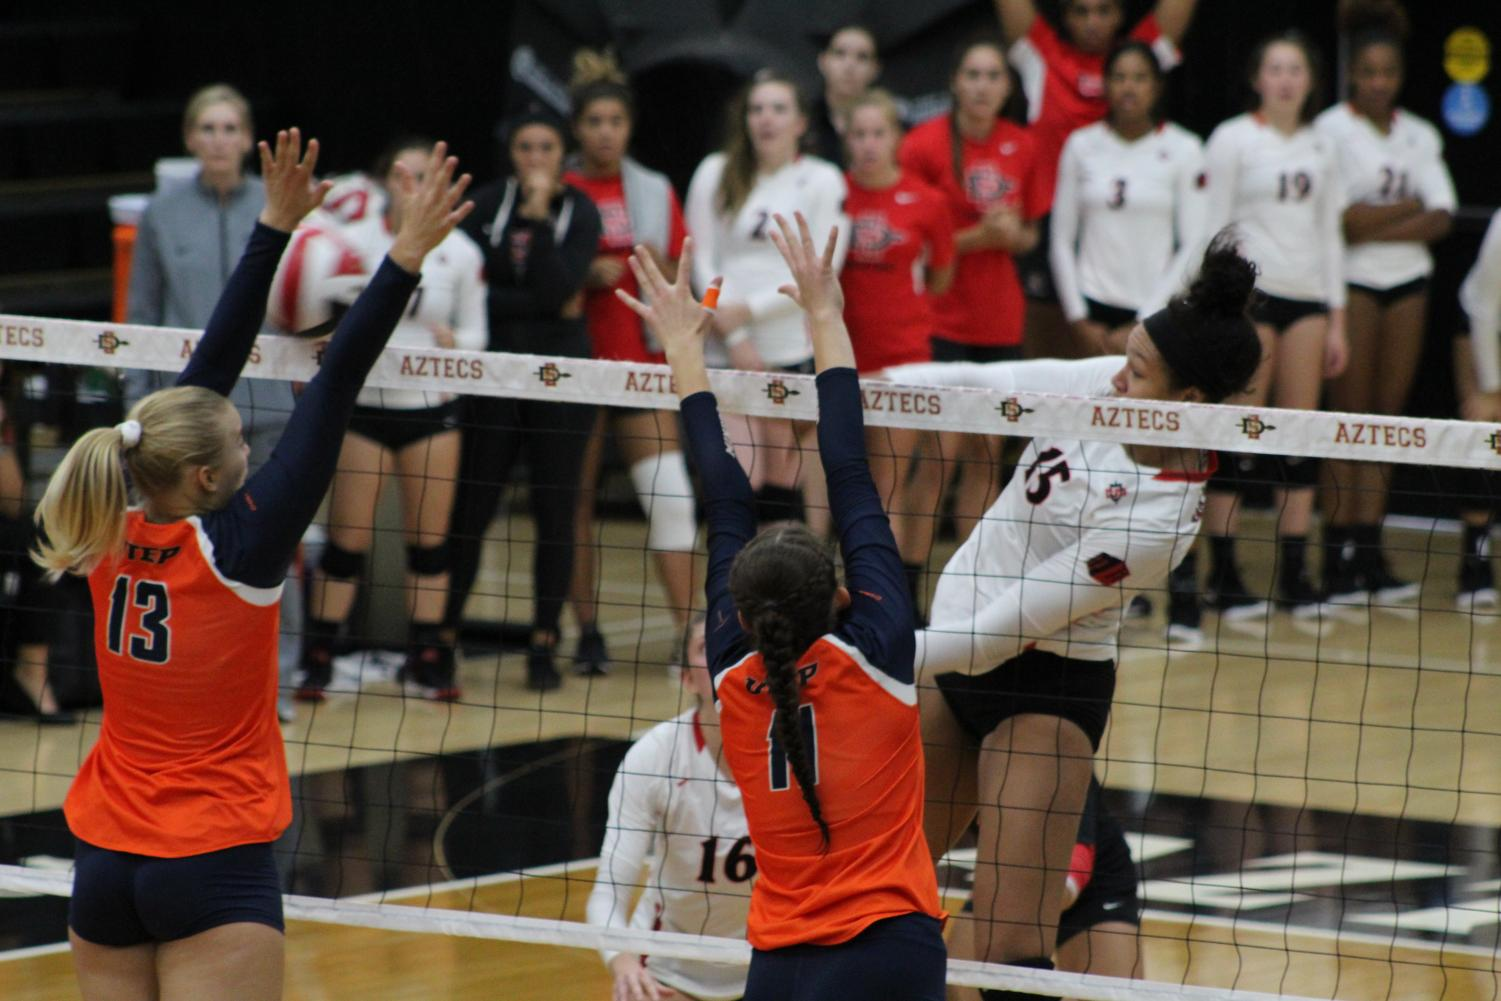 Senior middle blocker Deja Harris follows through after spiking the ball during the Aztecs five-set loss to UTEP on Sept. 15 at Peterson Gym.